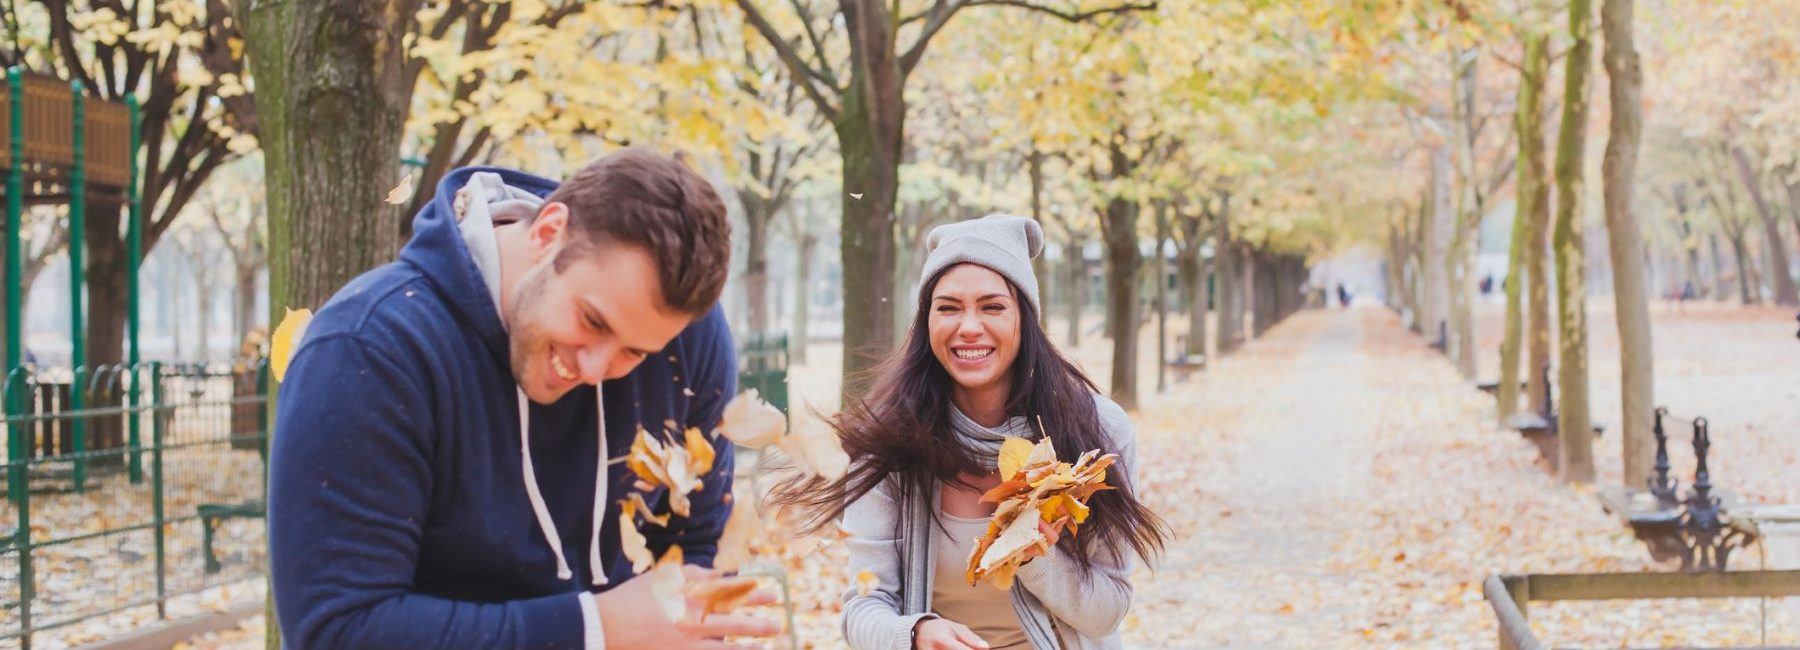 Couple in the Fall throwing leaves having fun